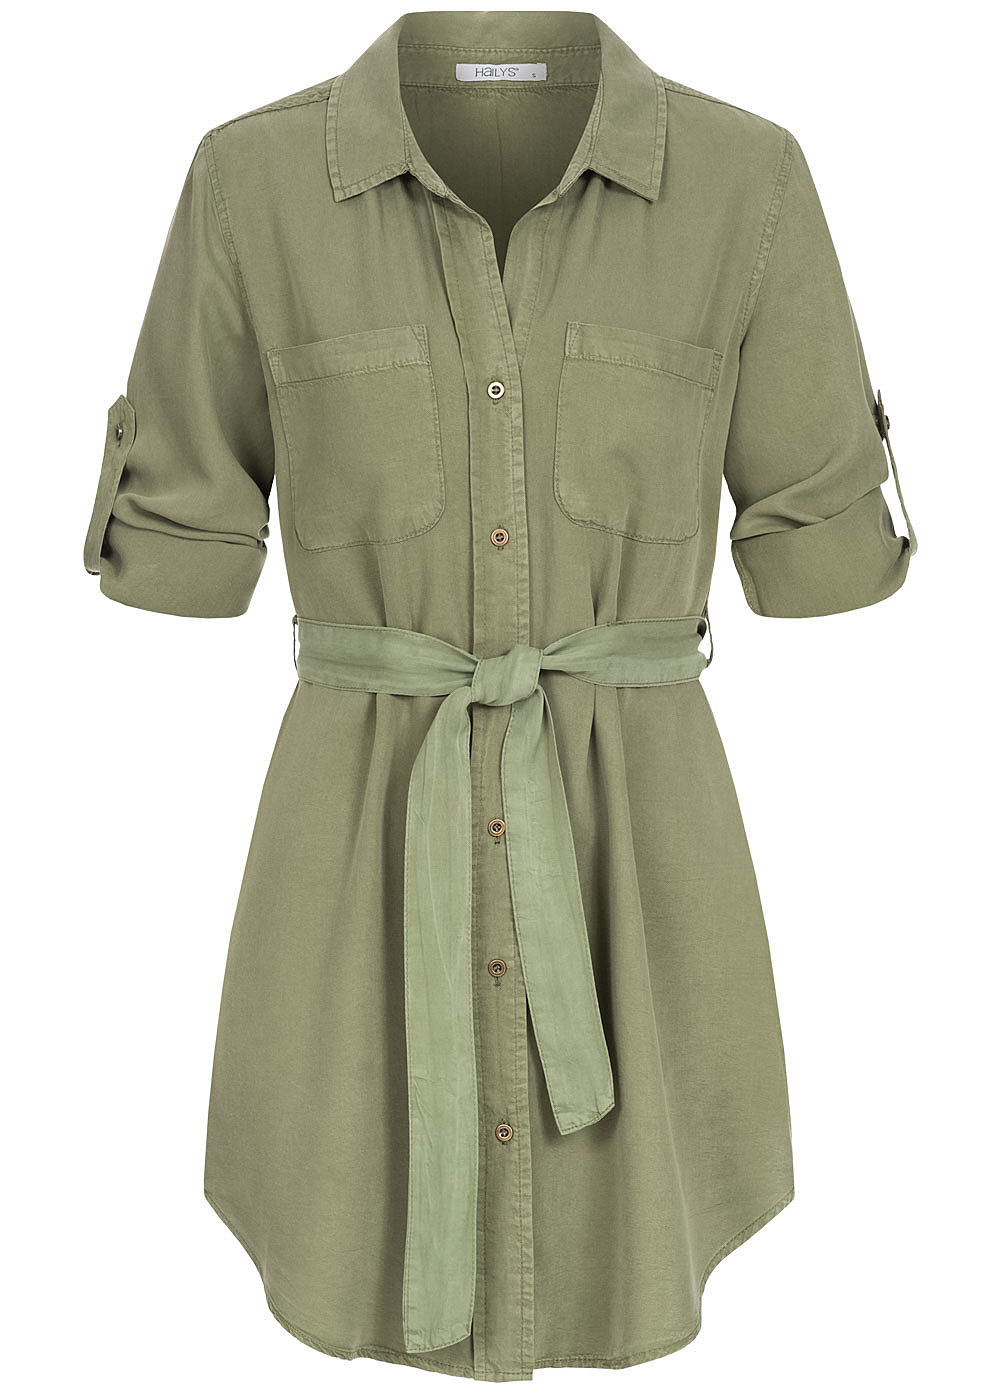 Hailys Damen 3/4 Arm Turn-Up Long Bluse 2-Pockets inkl. Bindegürtel khaki grün - Art.-Nr.: 20062899